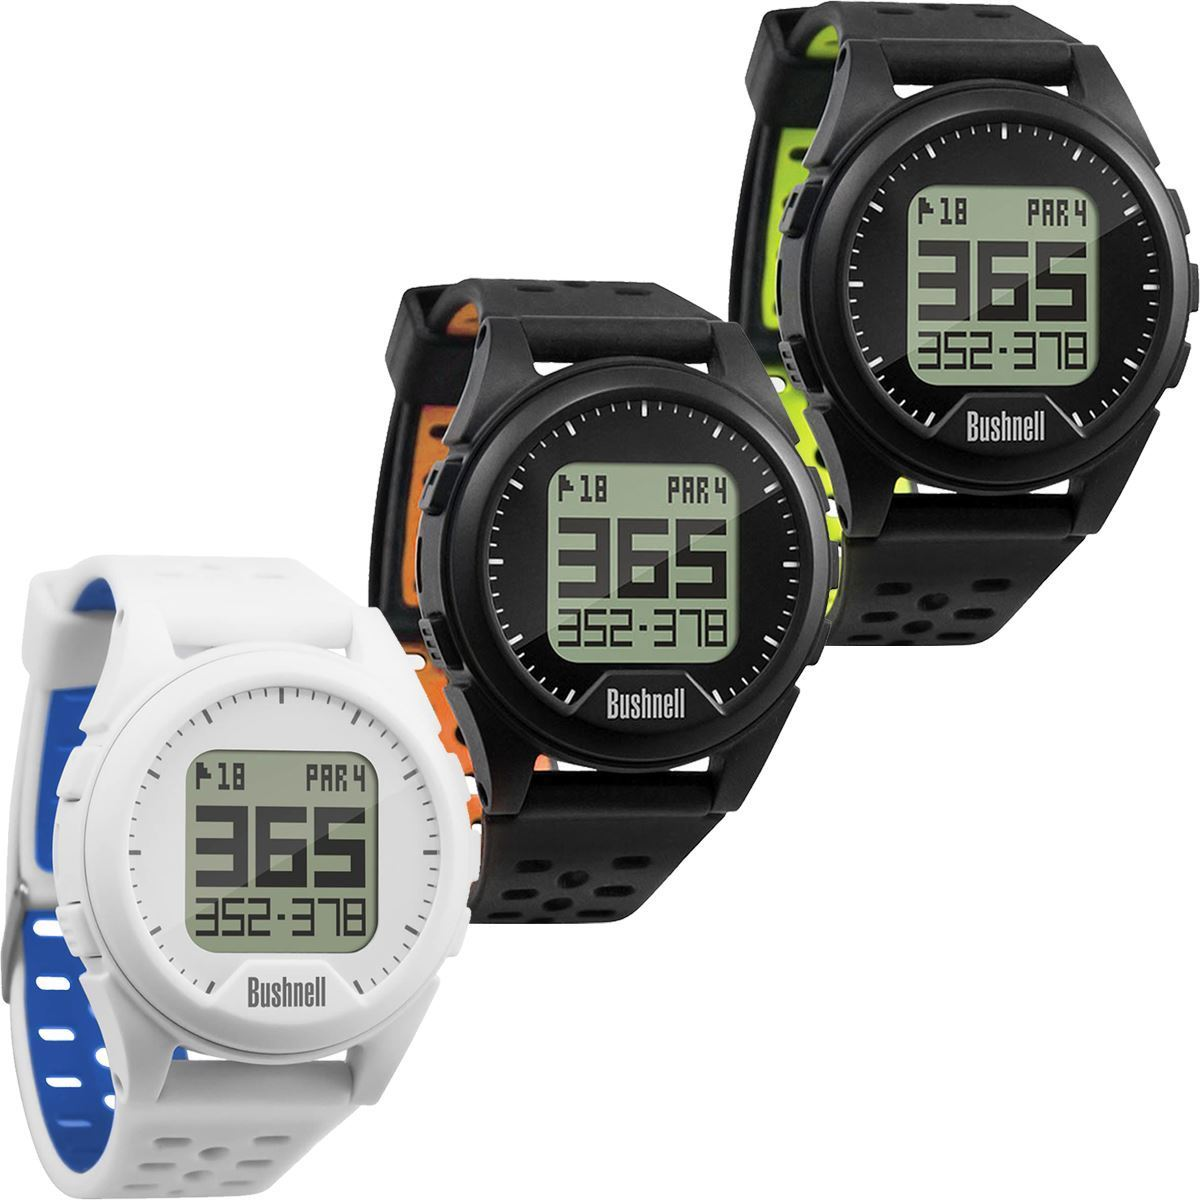 Best Golf GPS Watches For 2019 - Which One Is Right For You?